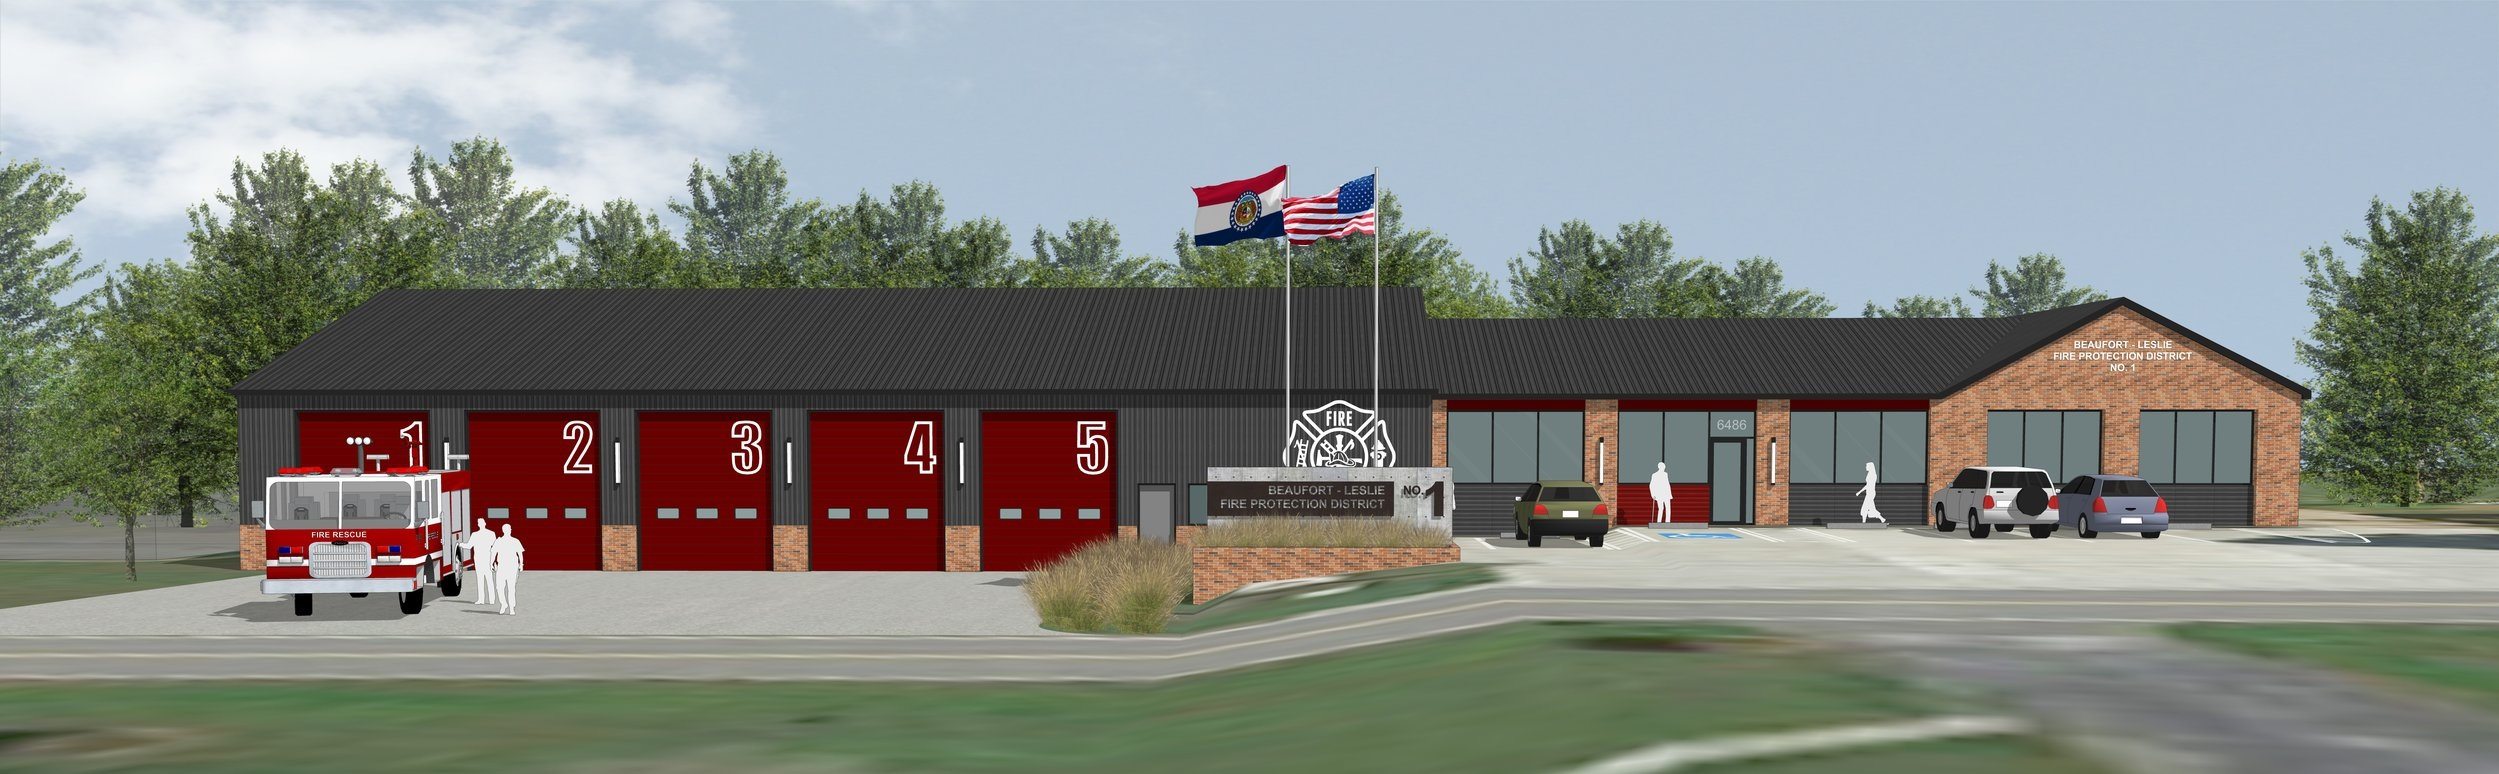 BLFPD: New building addition on the left and renovation of the existing station on the right.